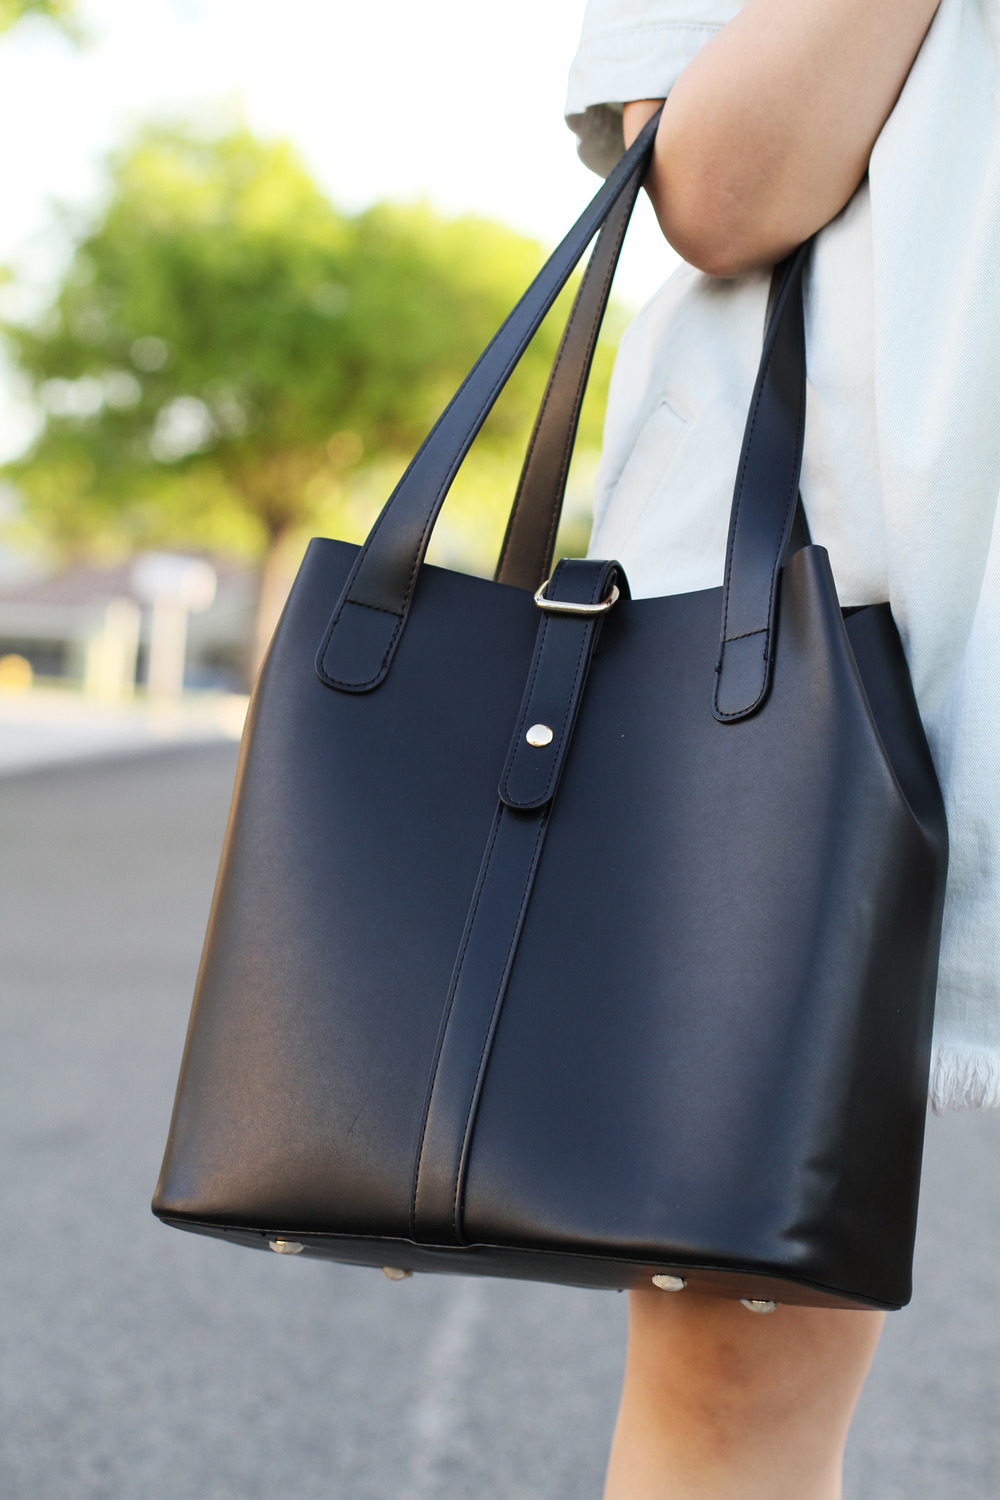 Ms littles bag black leather tote7.jpg